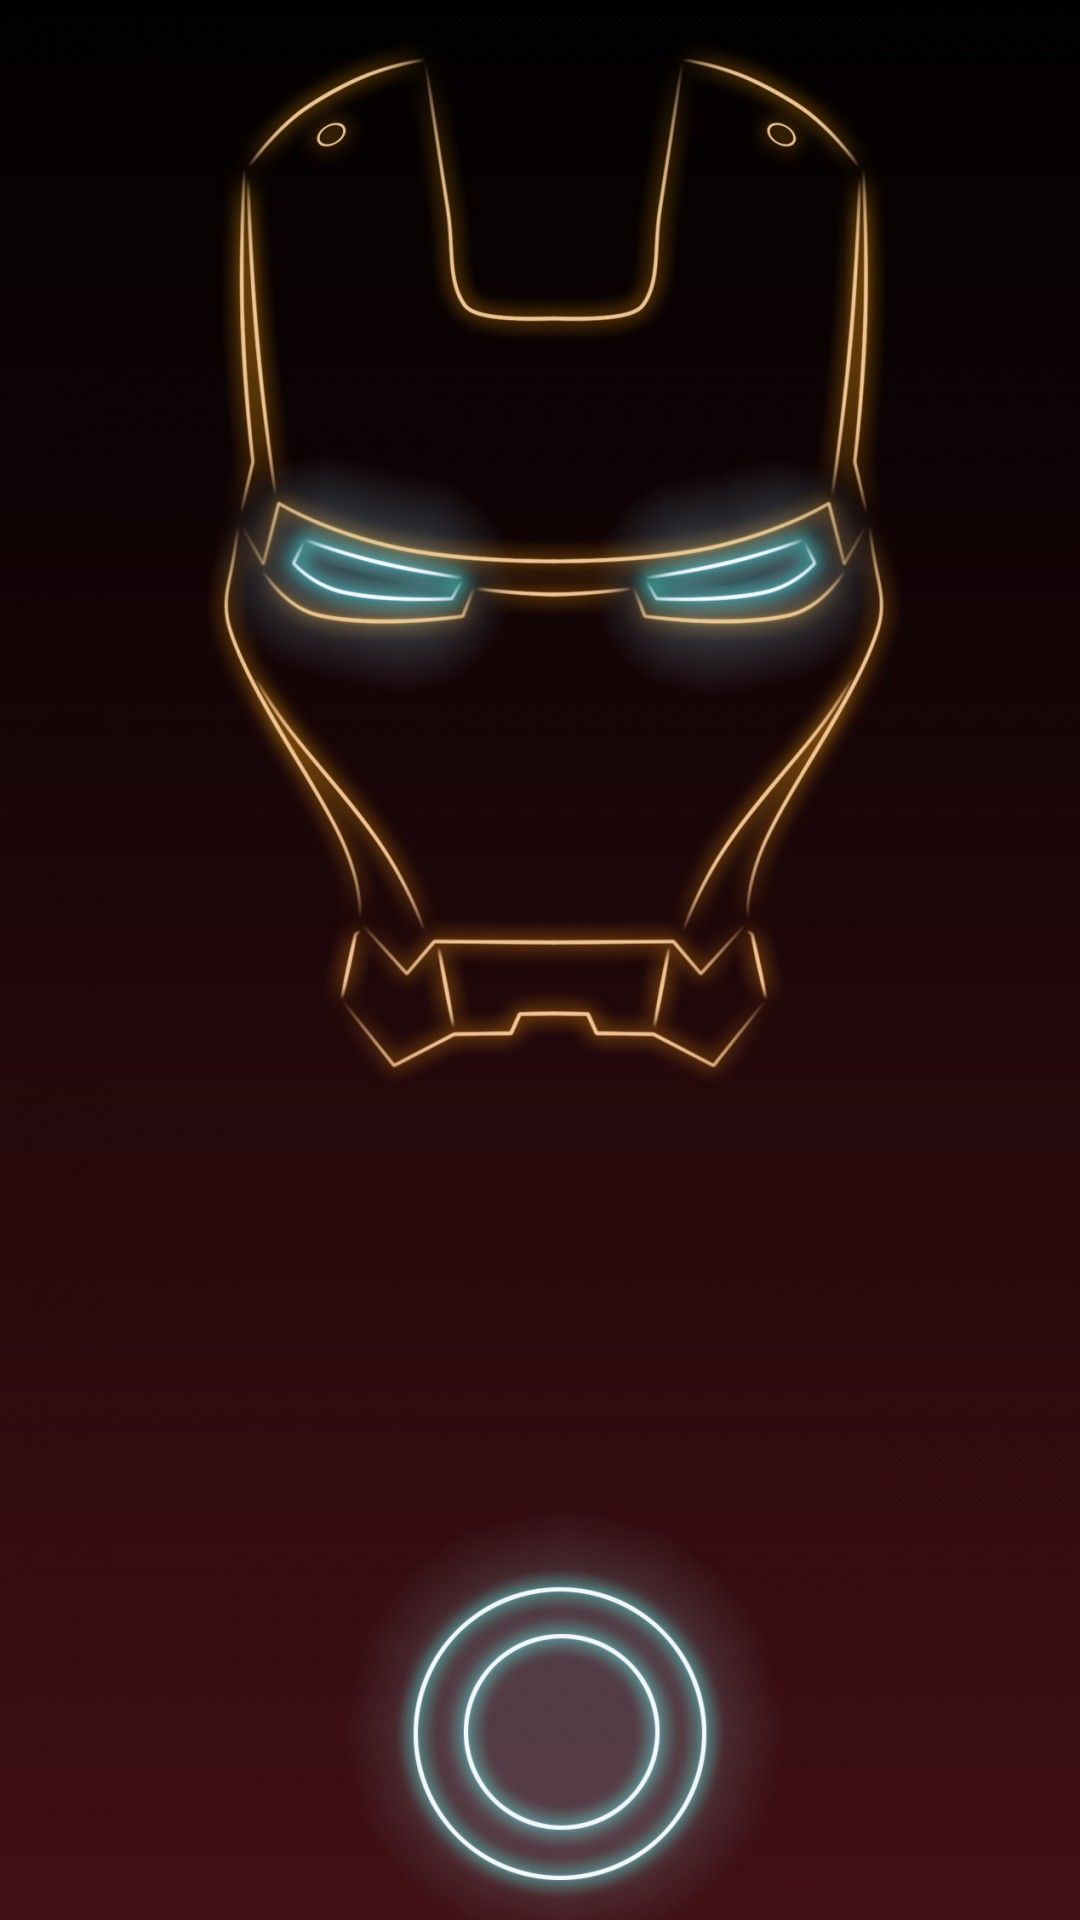 neon light superhero iron man 1080 x 1920 wallpapers disponible para su descarga gratuita visit to grab an amazing super hero shirt now on sale